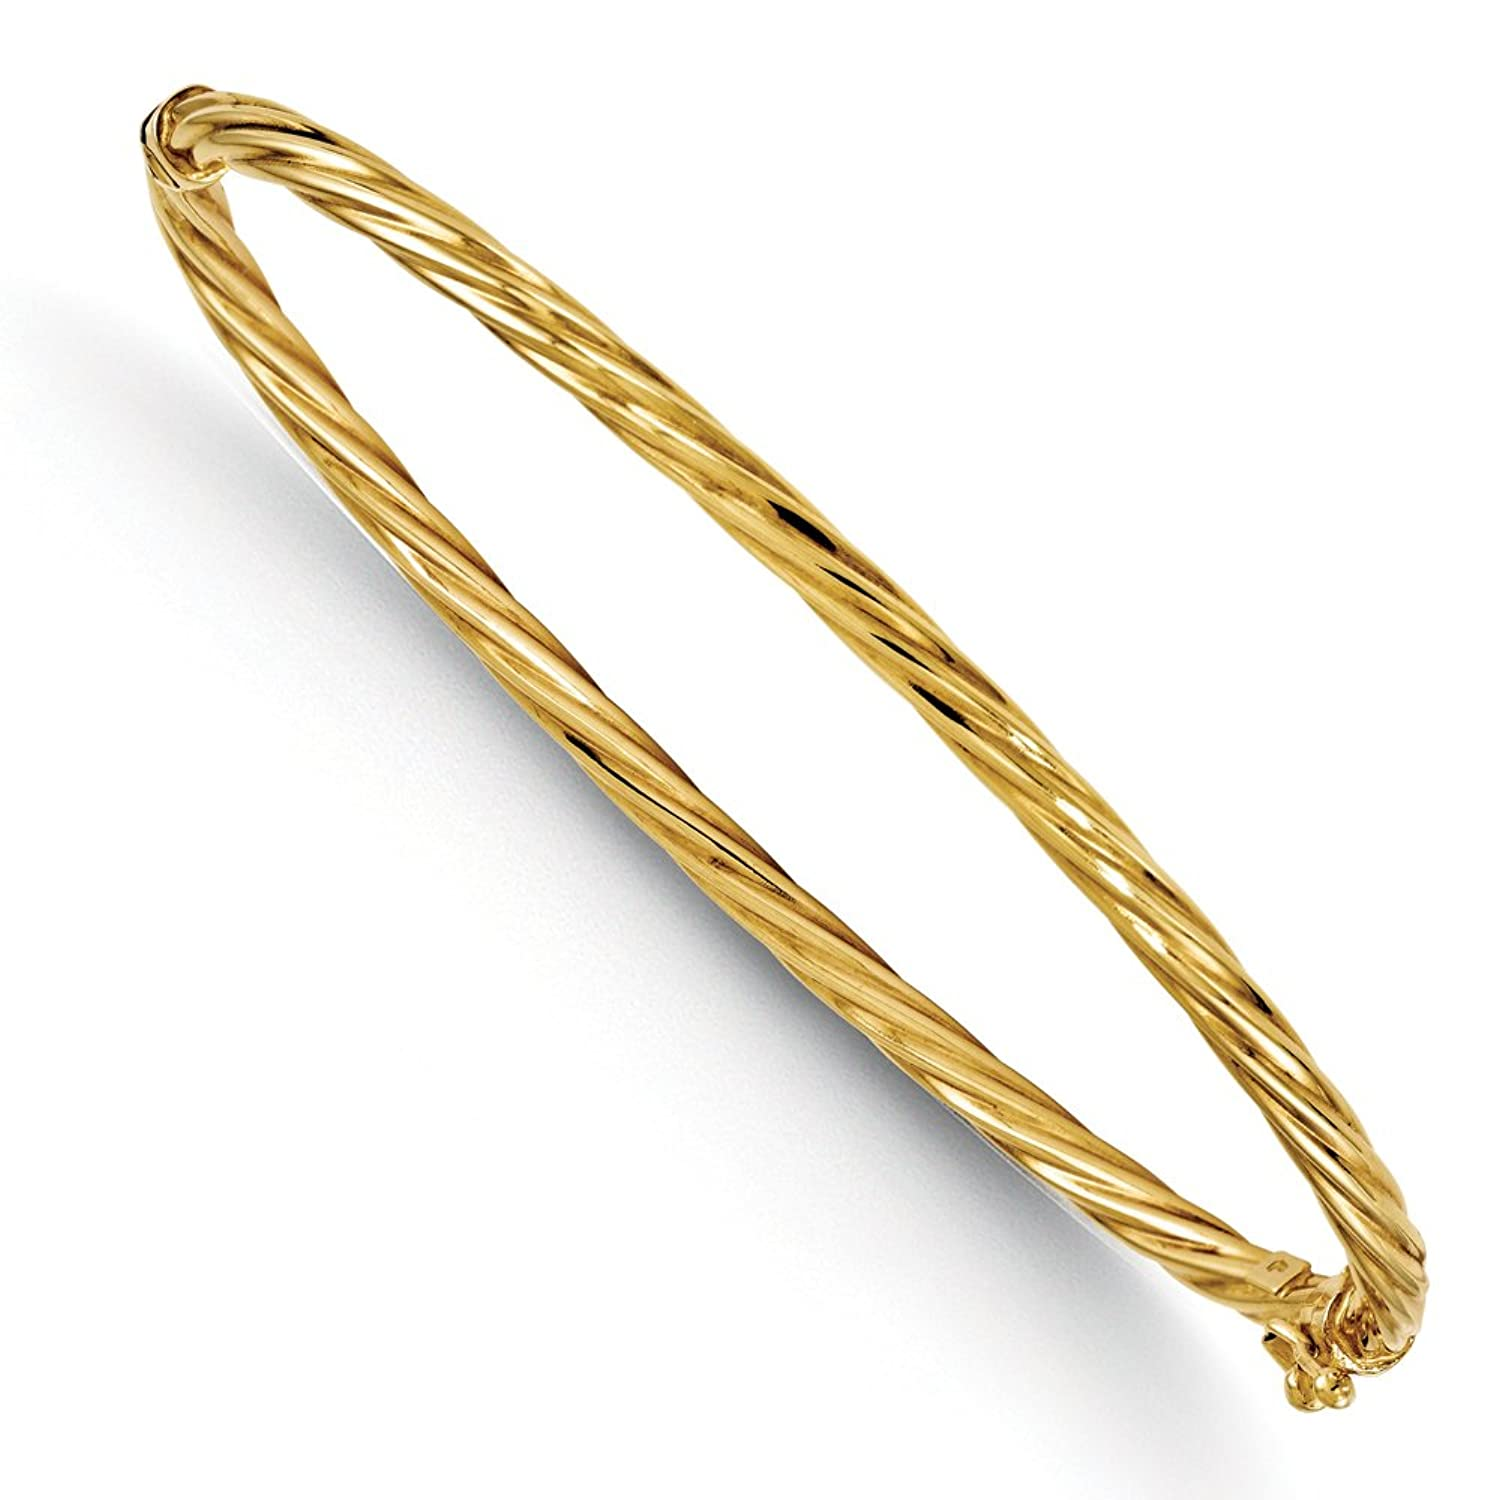 modern products stone bracelet bangle gold steel miajwl with a twisted grande stainless